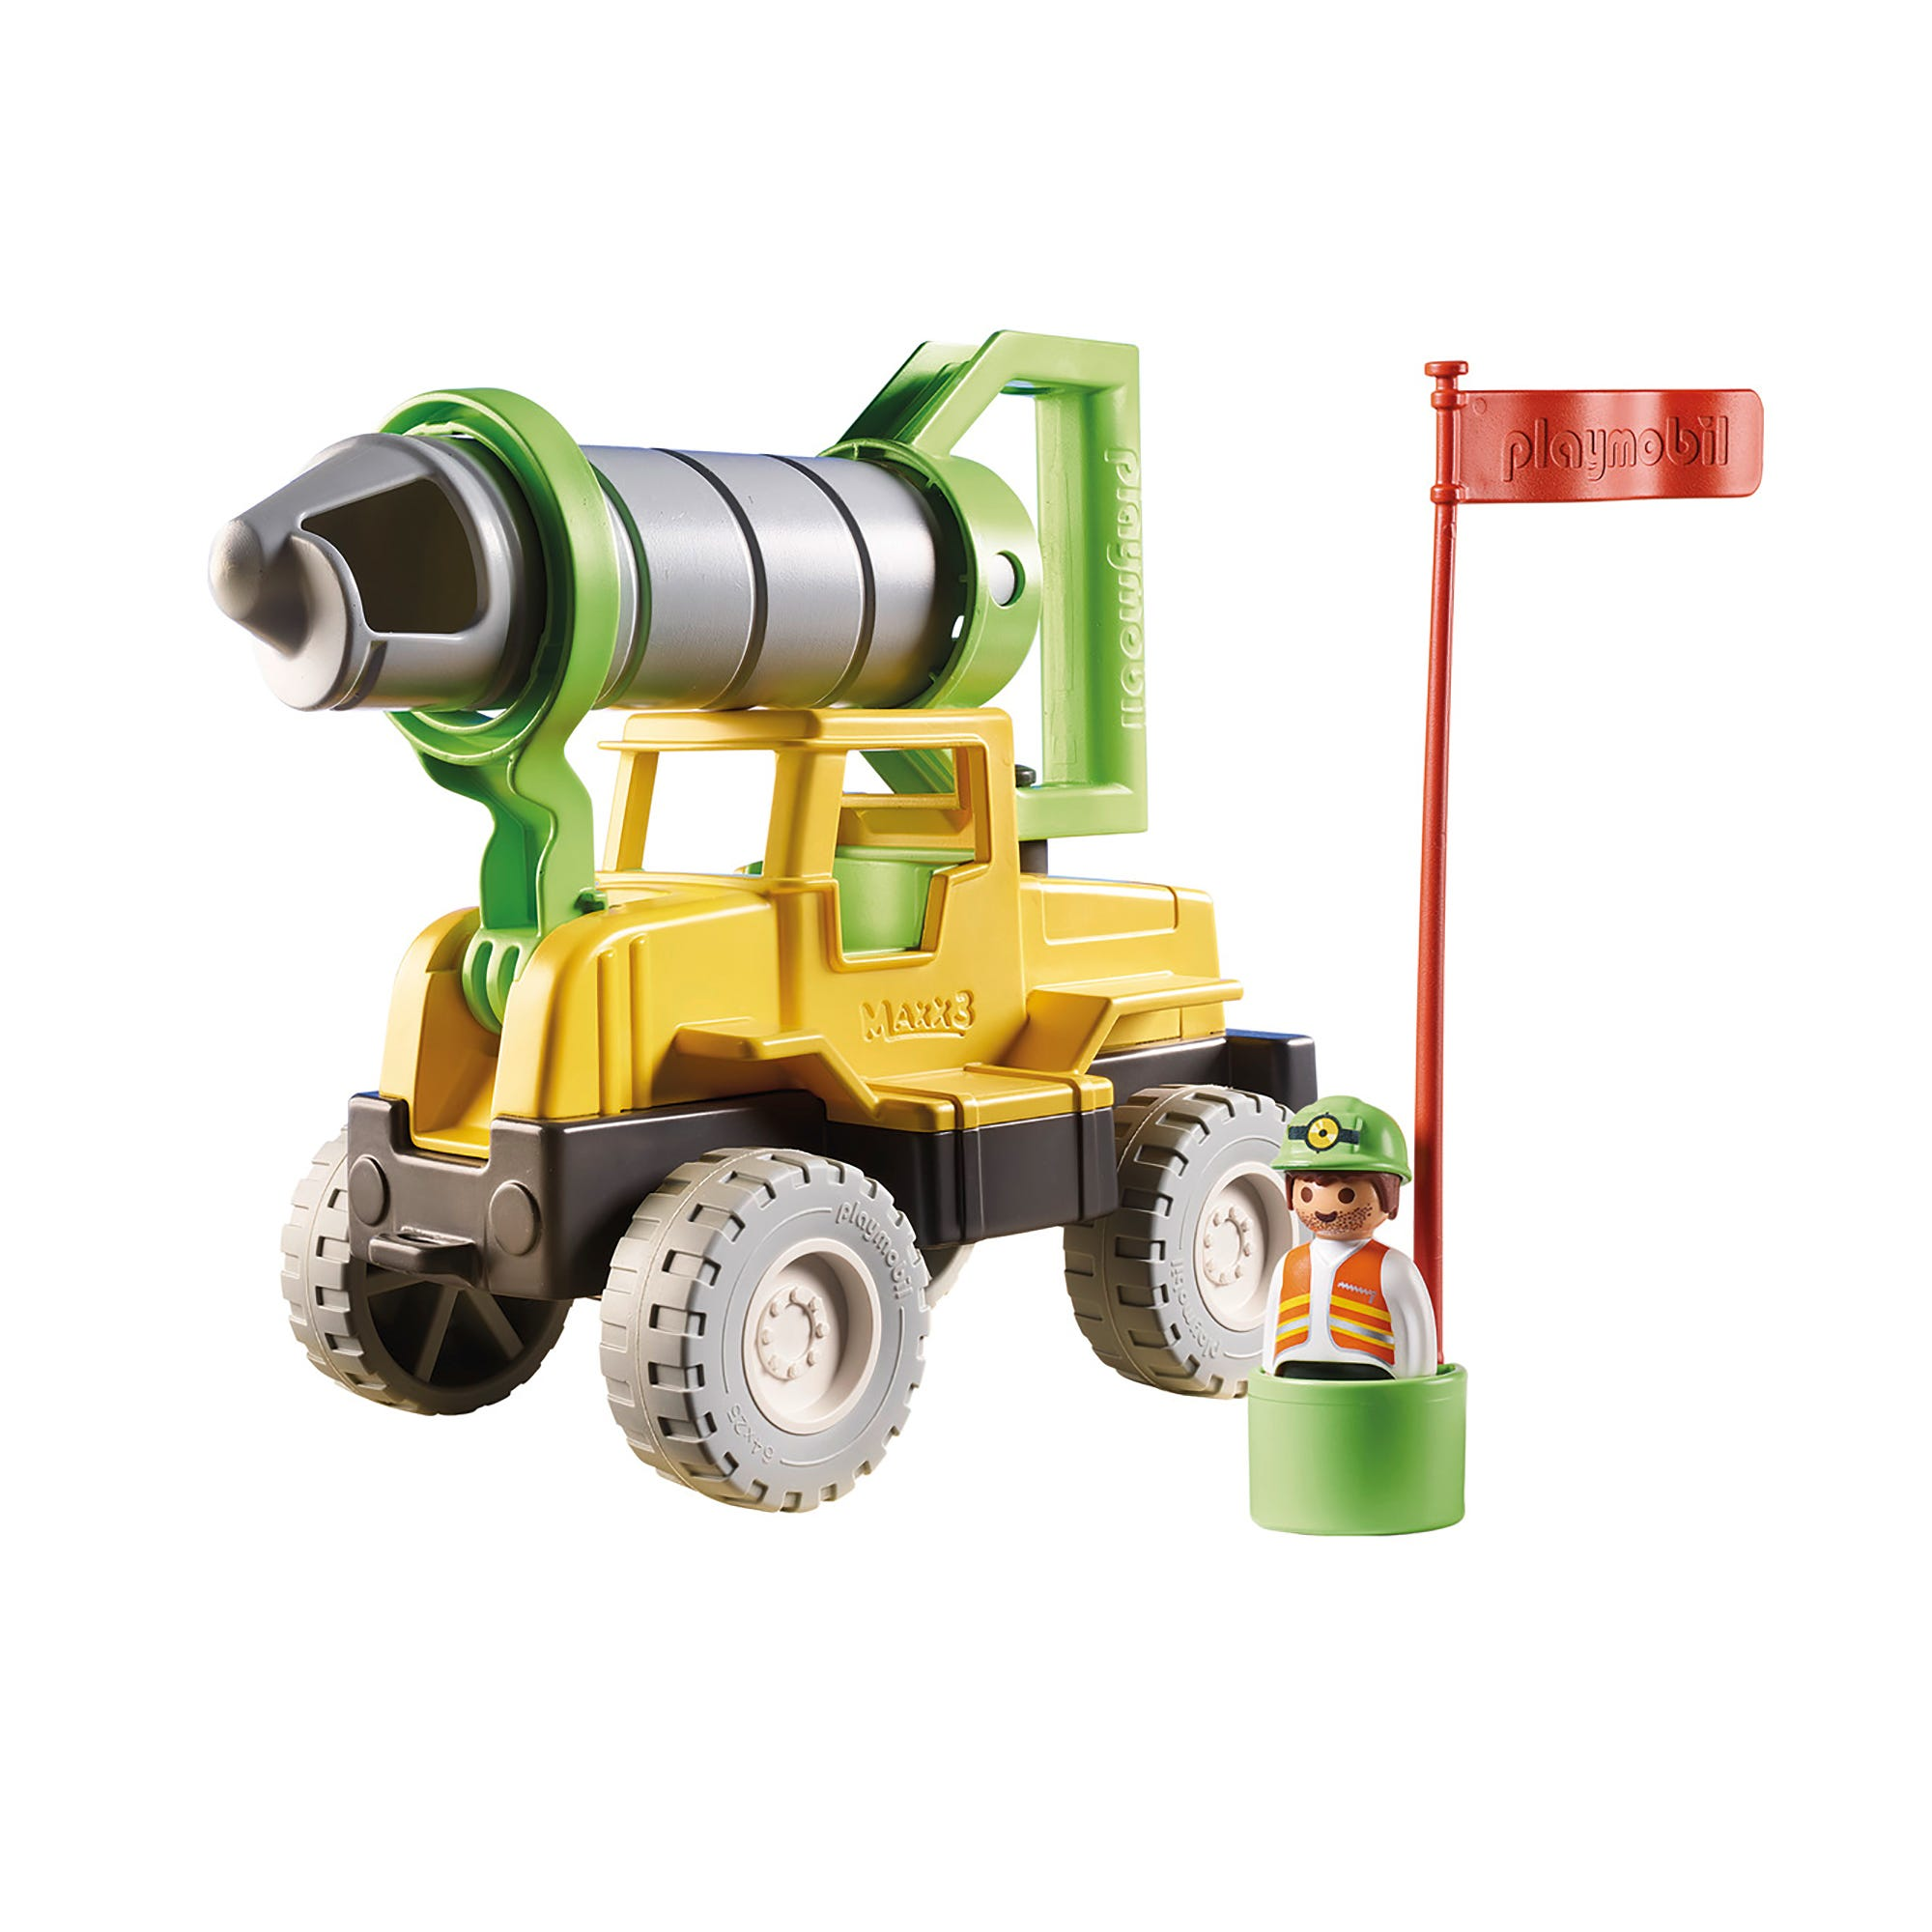 Playmobil 70064 SAND Drilling Rig